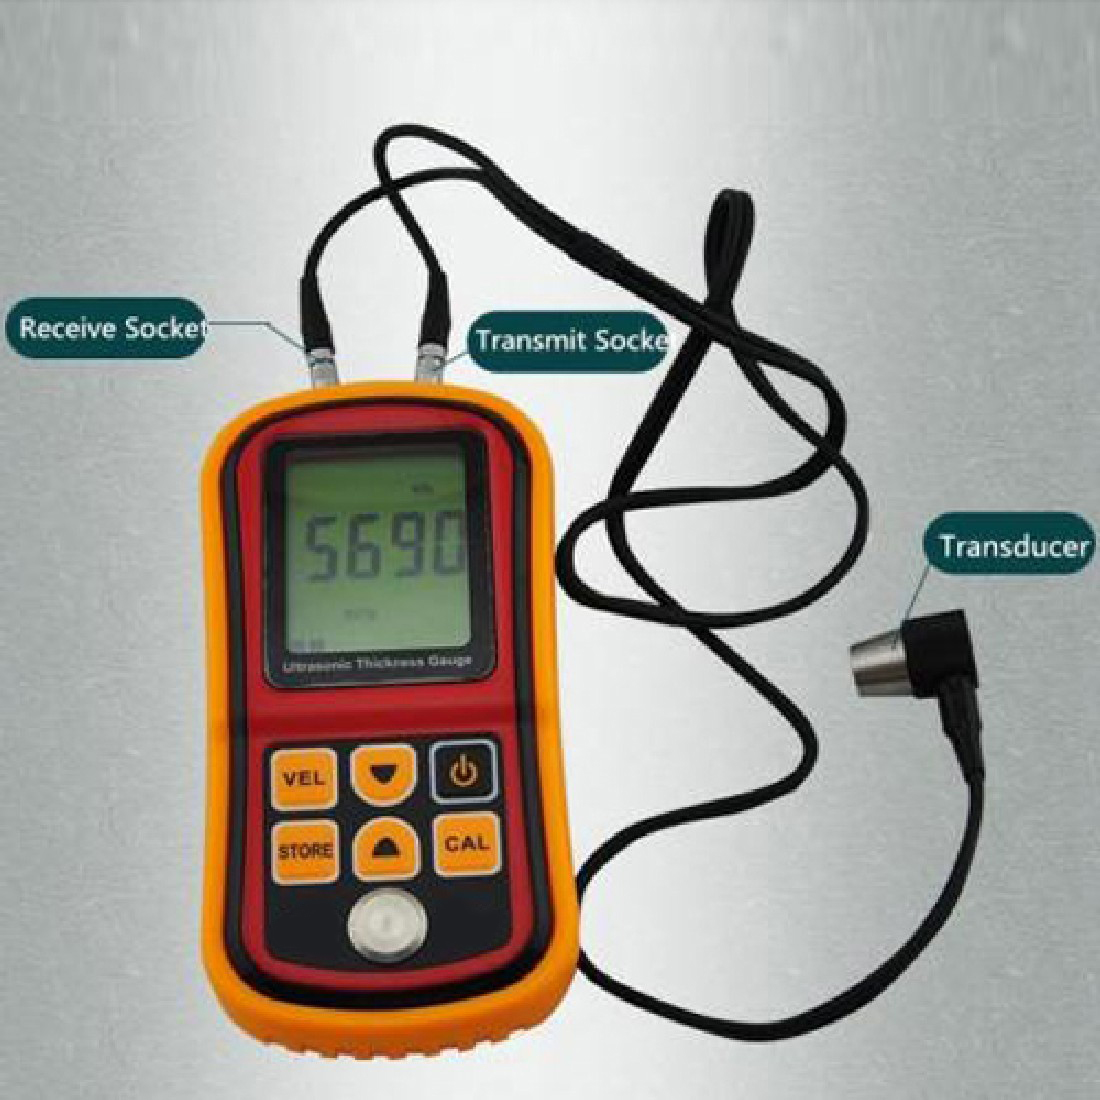 Limited Coating Thickness Gauge Gm100 Ultrasonic Wall Thickness Gauge Meter Tester Steel Pvc Digital Testing 0 001mm electronic thickness gauge 0 1mm digital thickness meter tester for paper film bc04